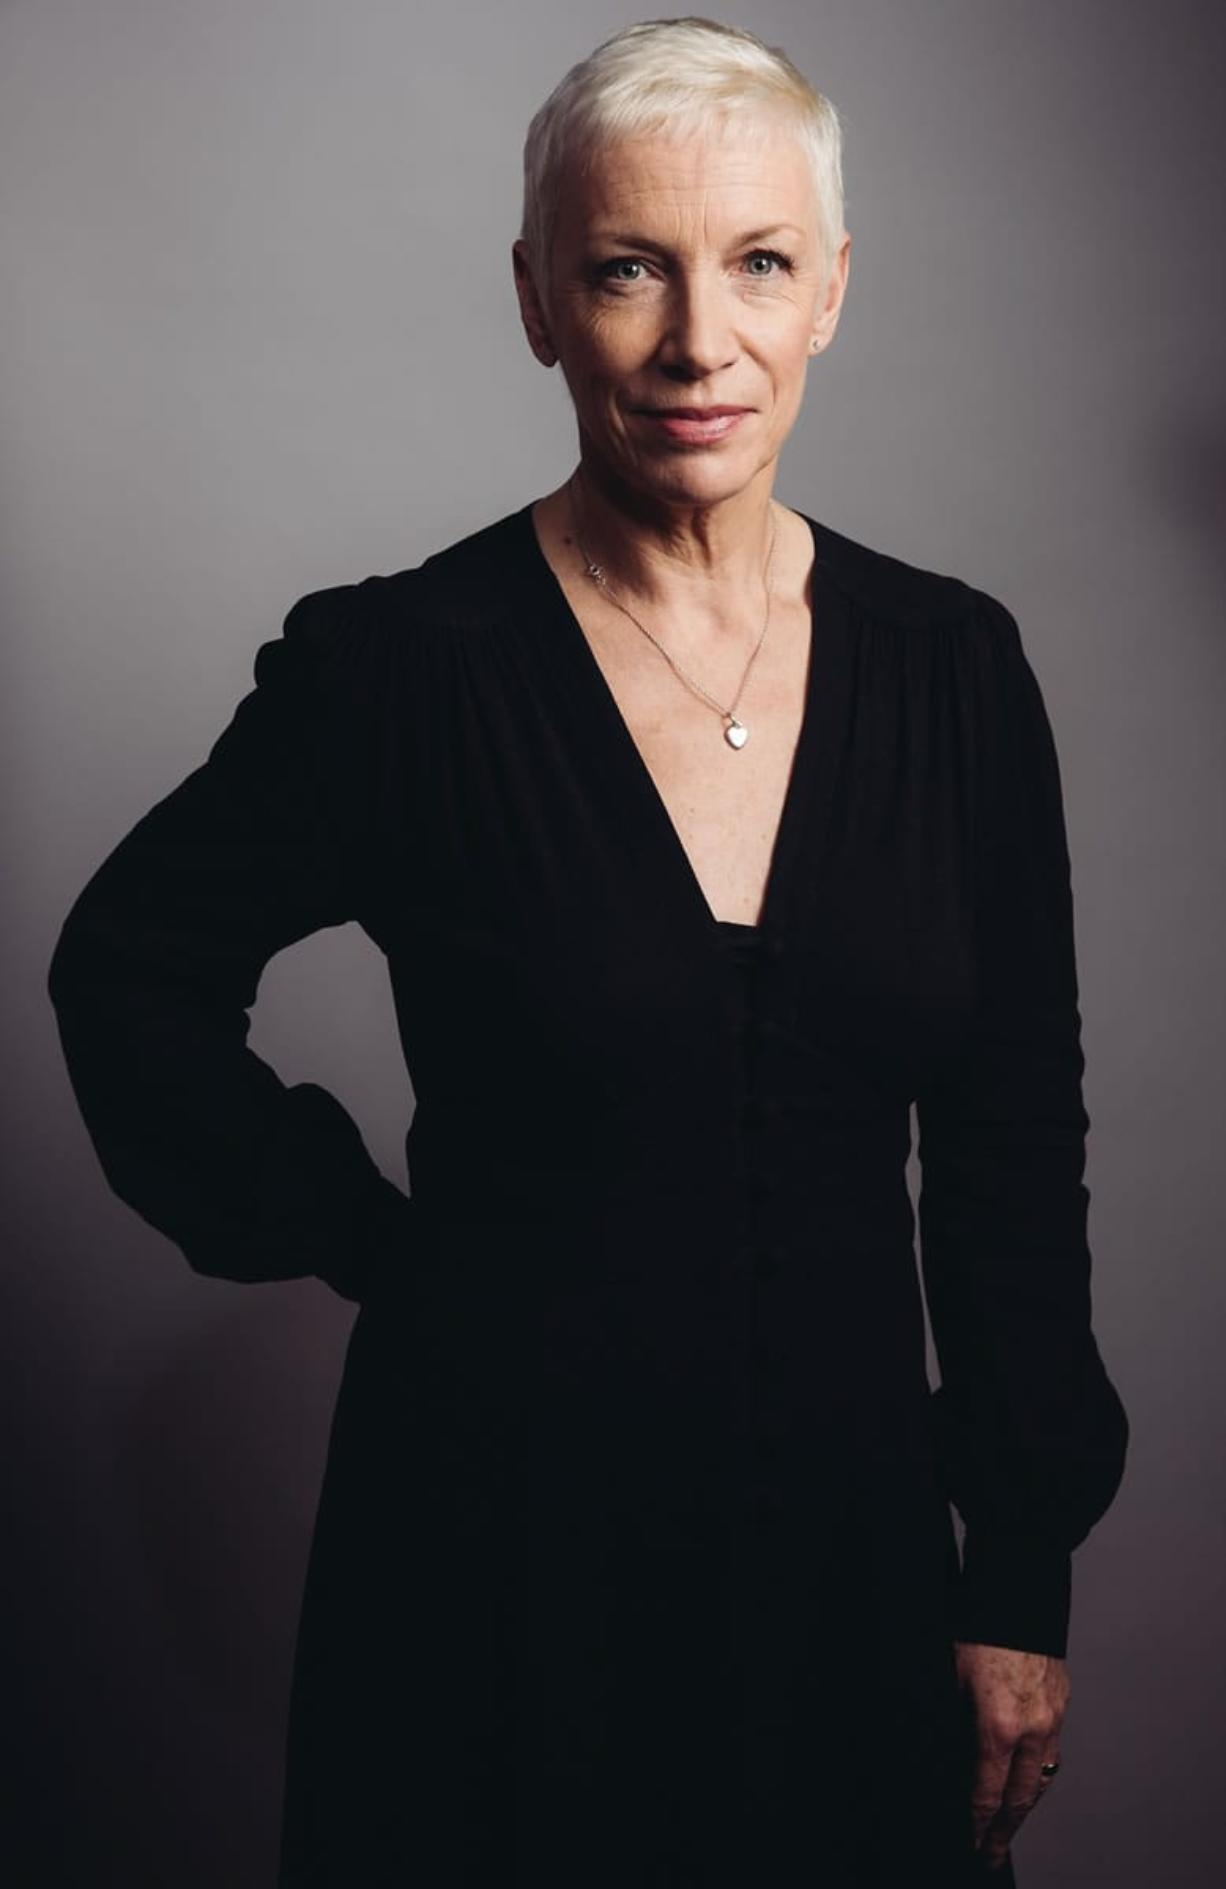 """In this Oct. 9, 2014 photo, musician Annie Lennox poses for a portrait during an interview in Los Angeles to promote her new CD """"Nostalgia."""" (Photo by Casey Curry/Invision/AP)"""